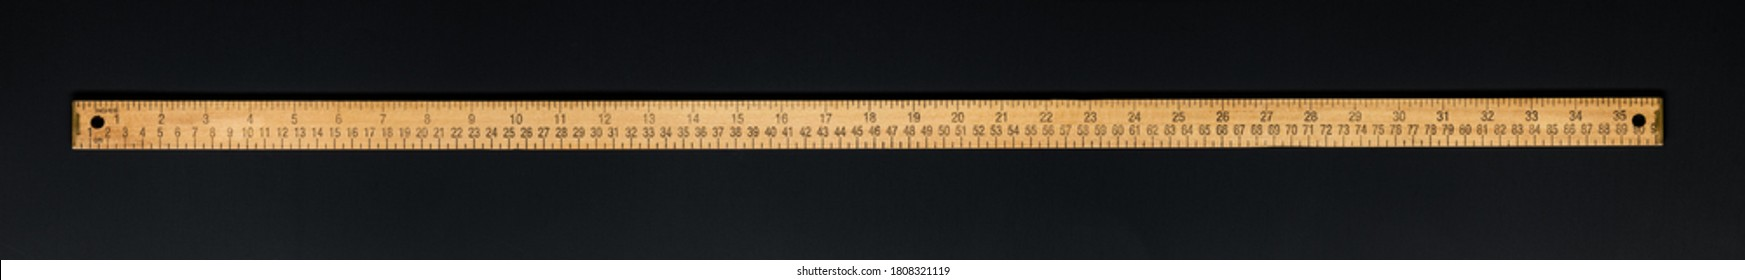 Wooden yardstick on black backgrounds whit centimeters and inches fractions scales.